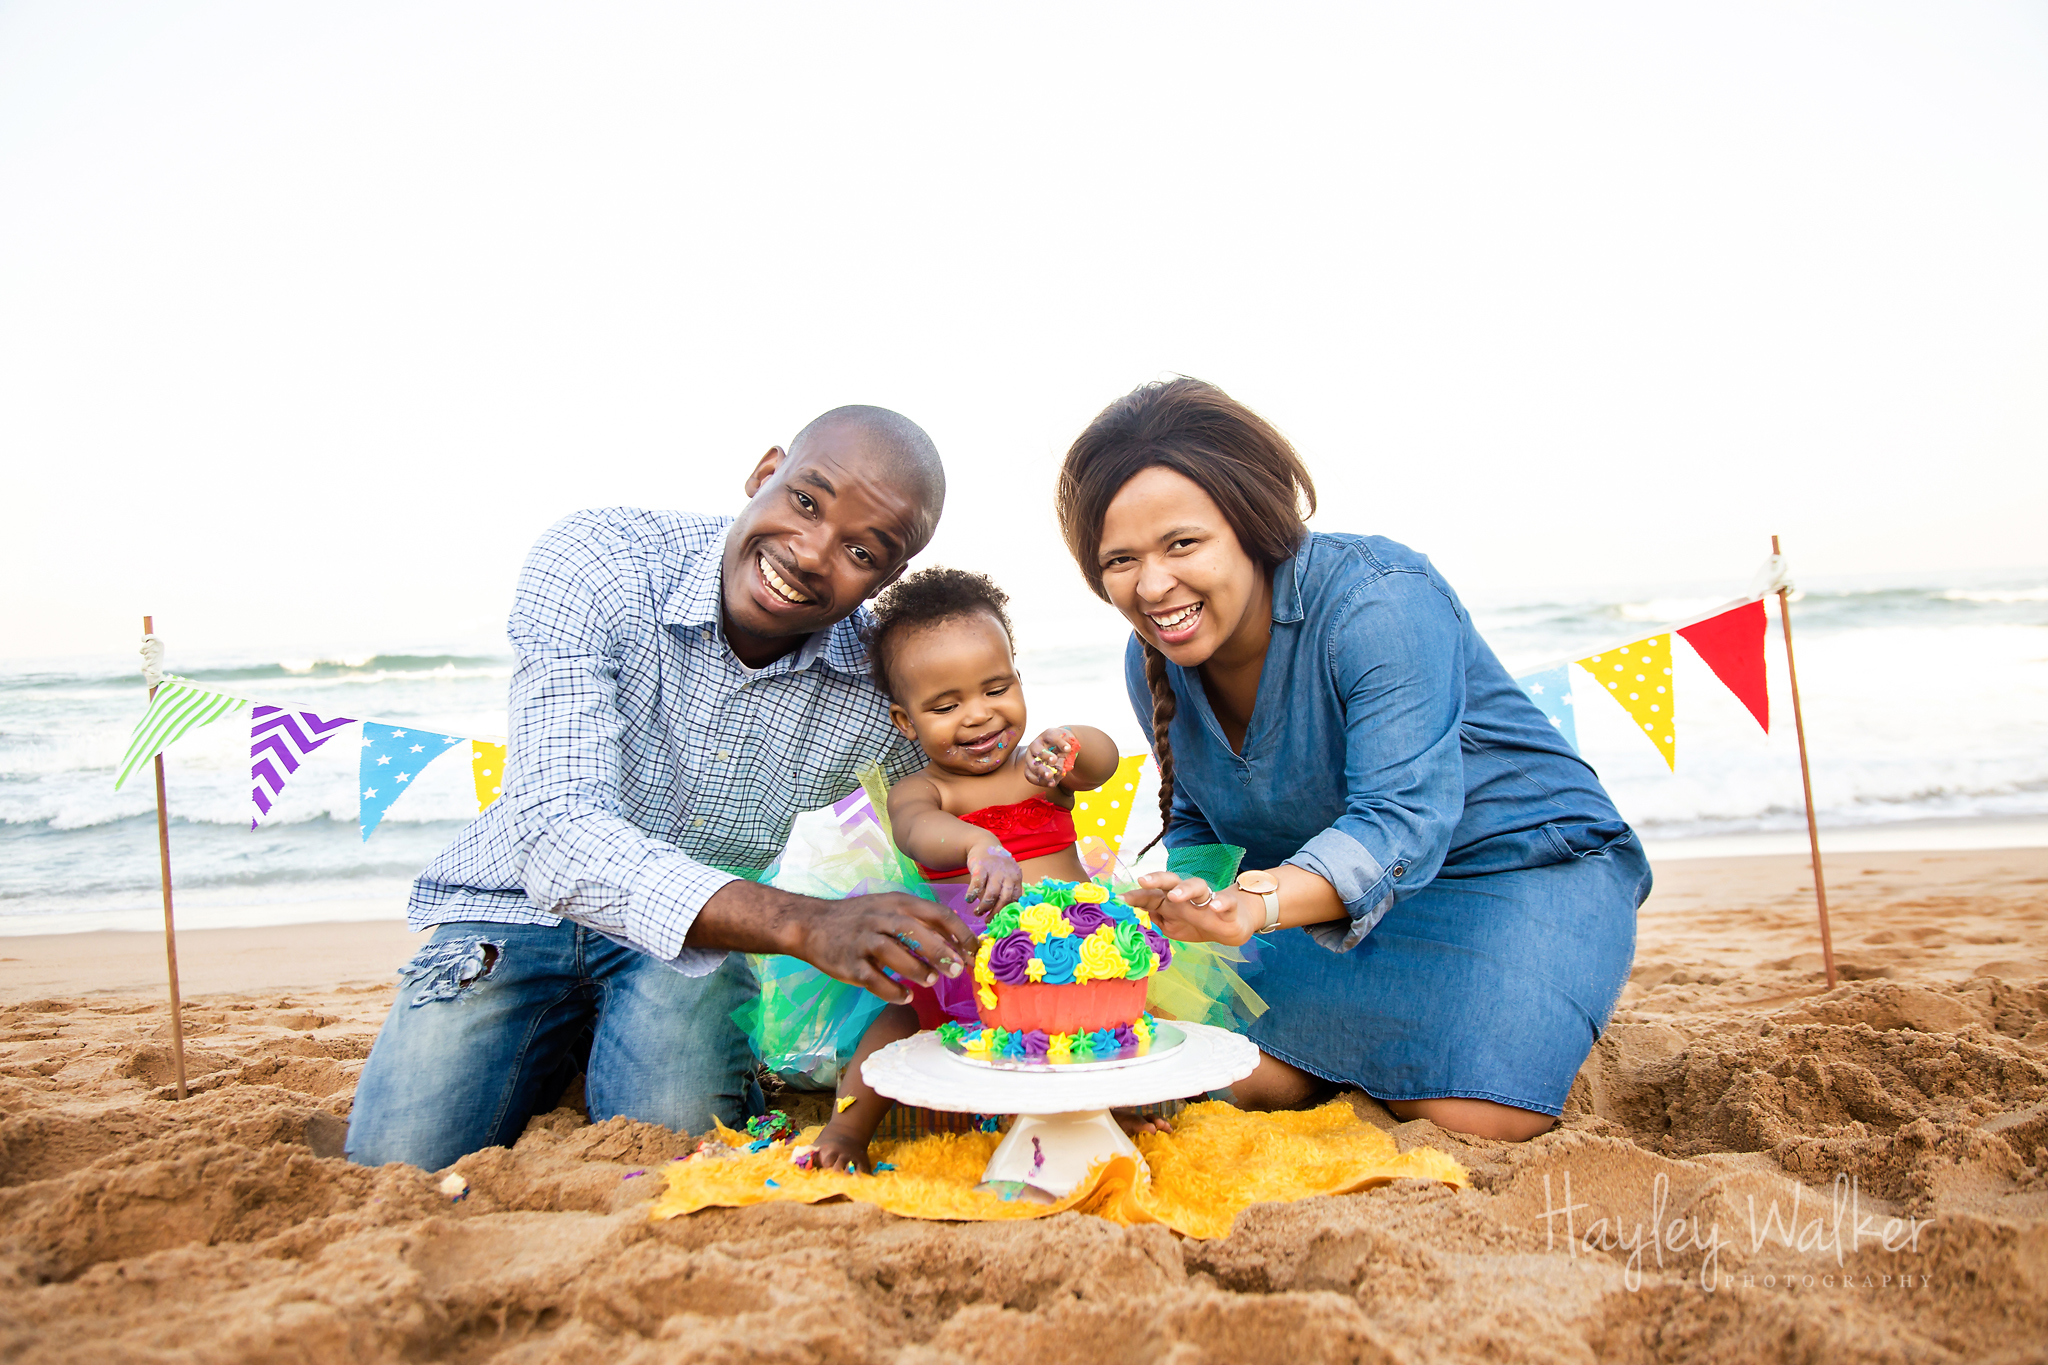 010-hayley-walker-photography-hillcrest-durban-photographer-family-photoshoot-beach-cakesmash